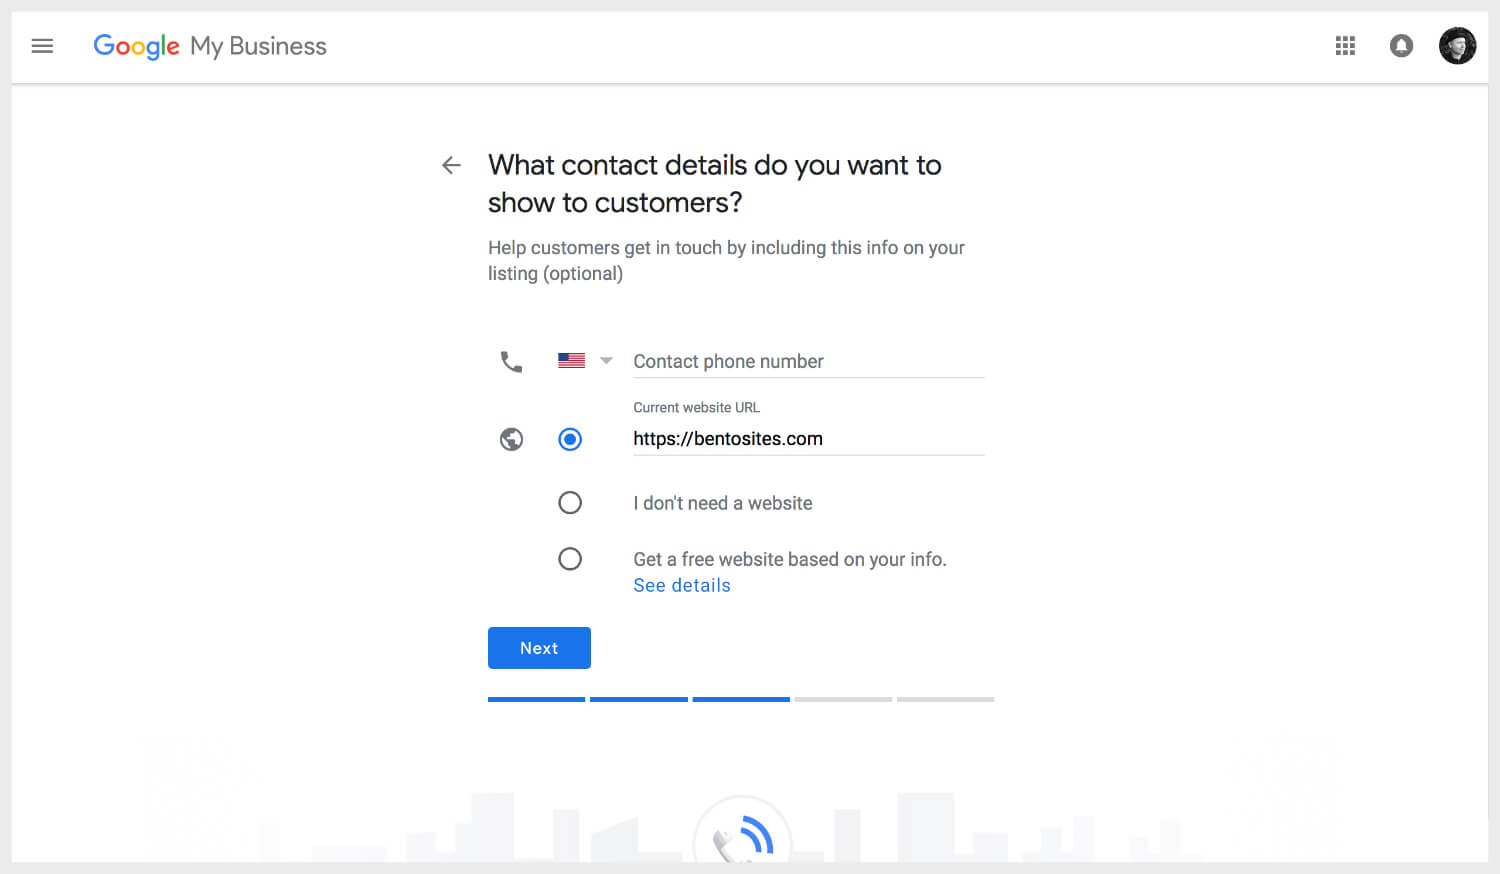 Adding contact details on Google My Business